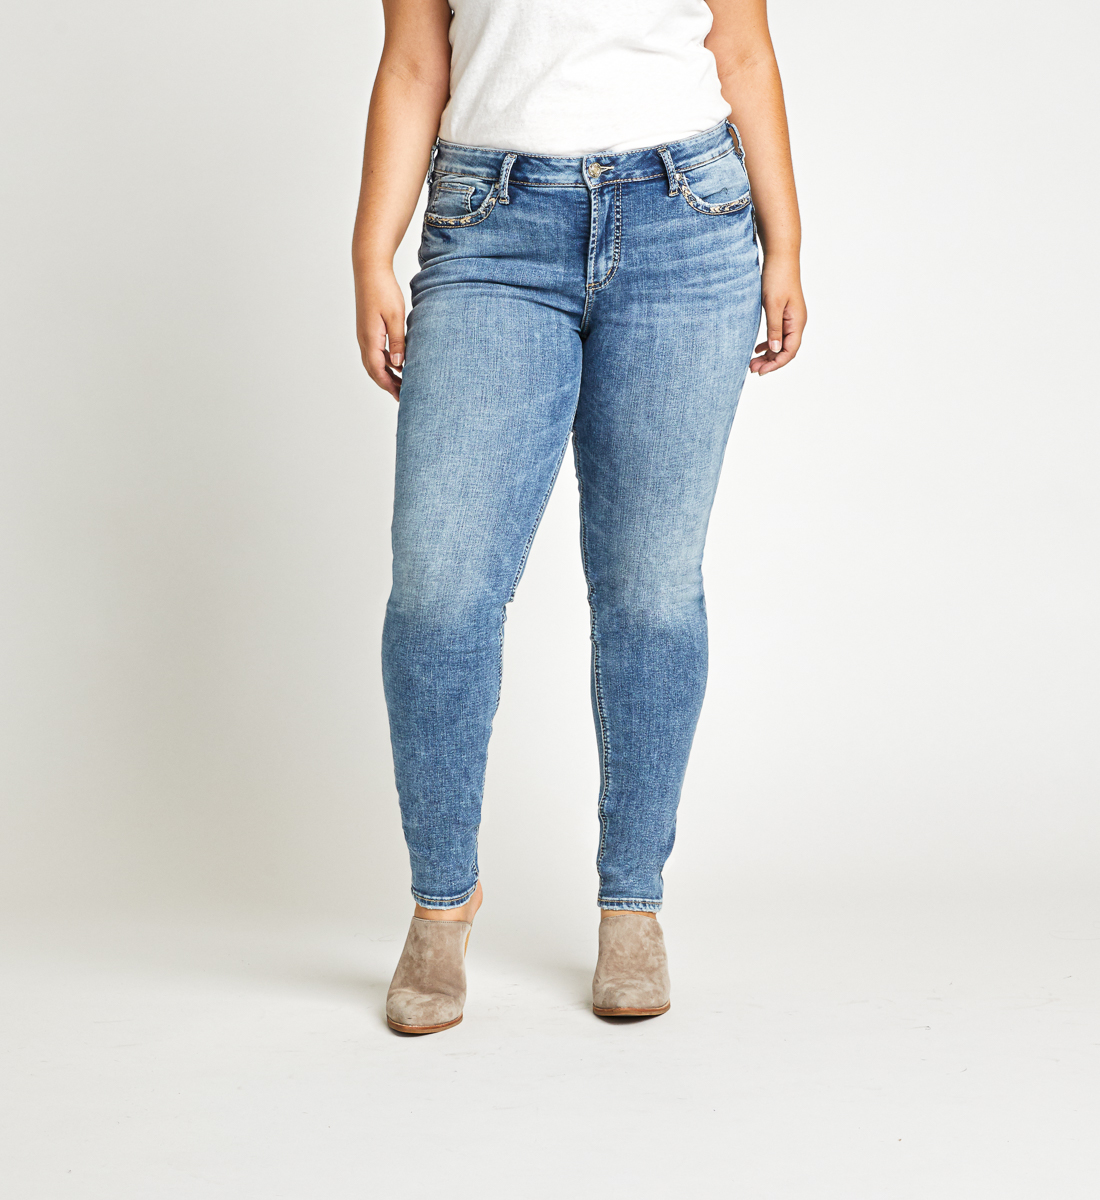 Elyse Skinny Leg Jeans Plus Size Front